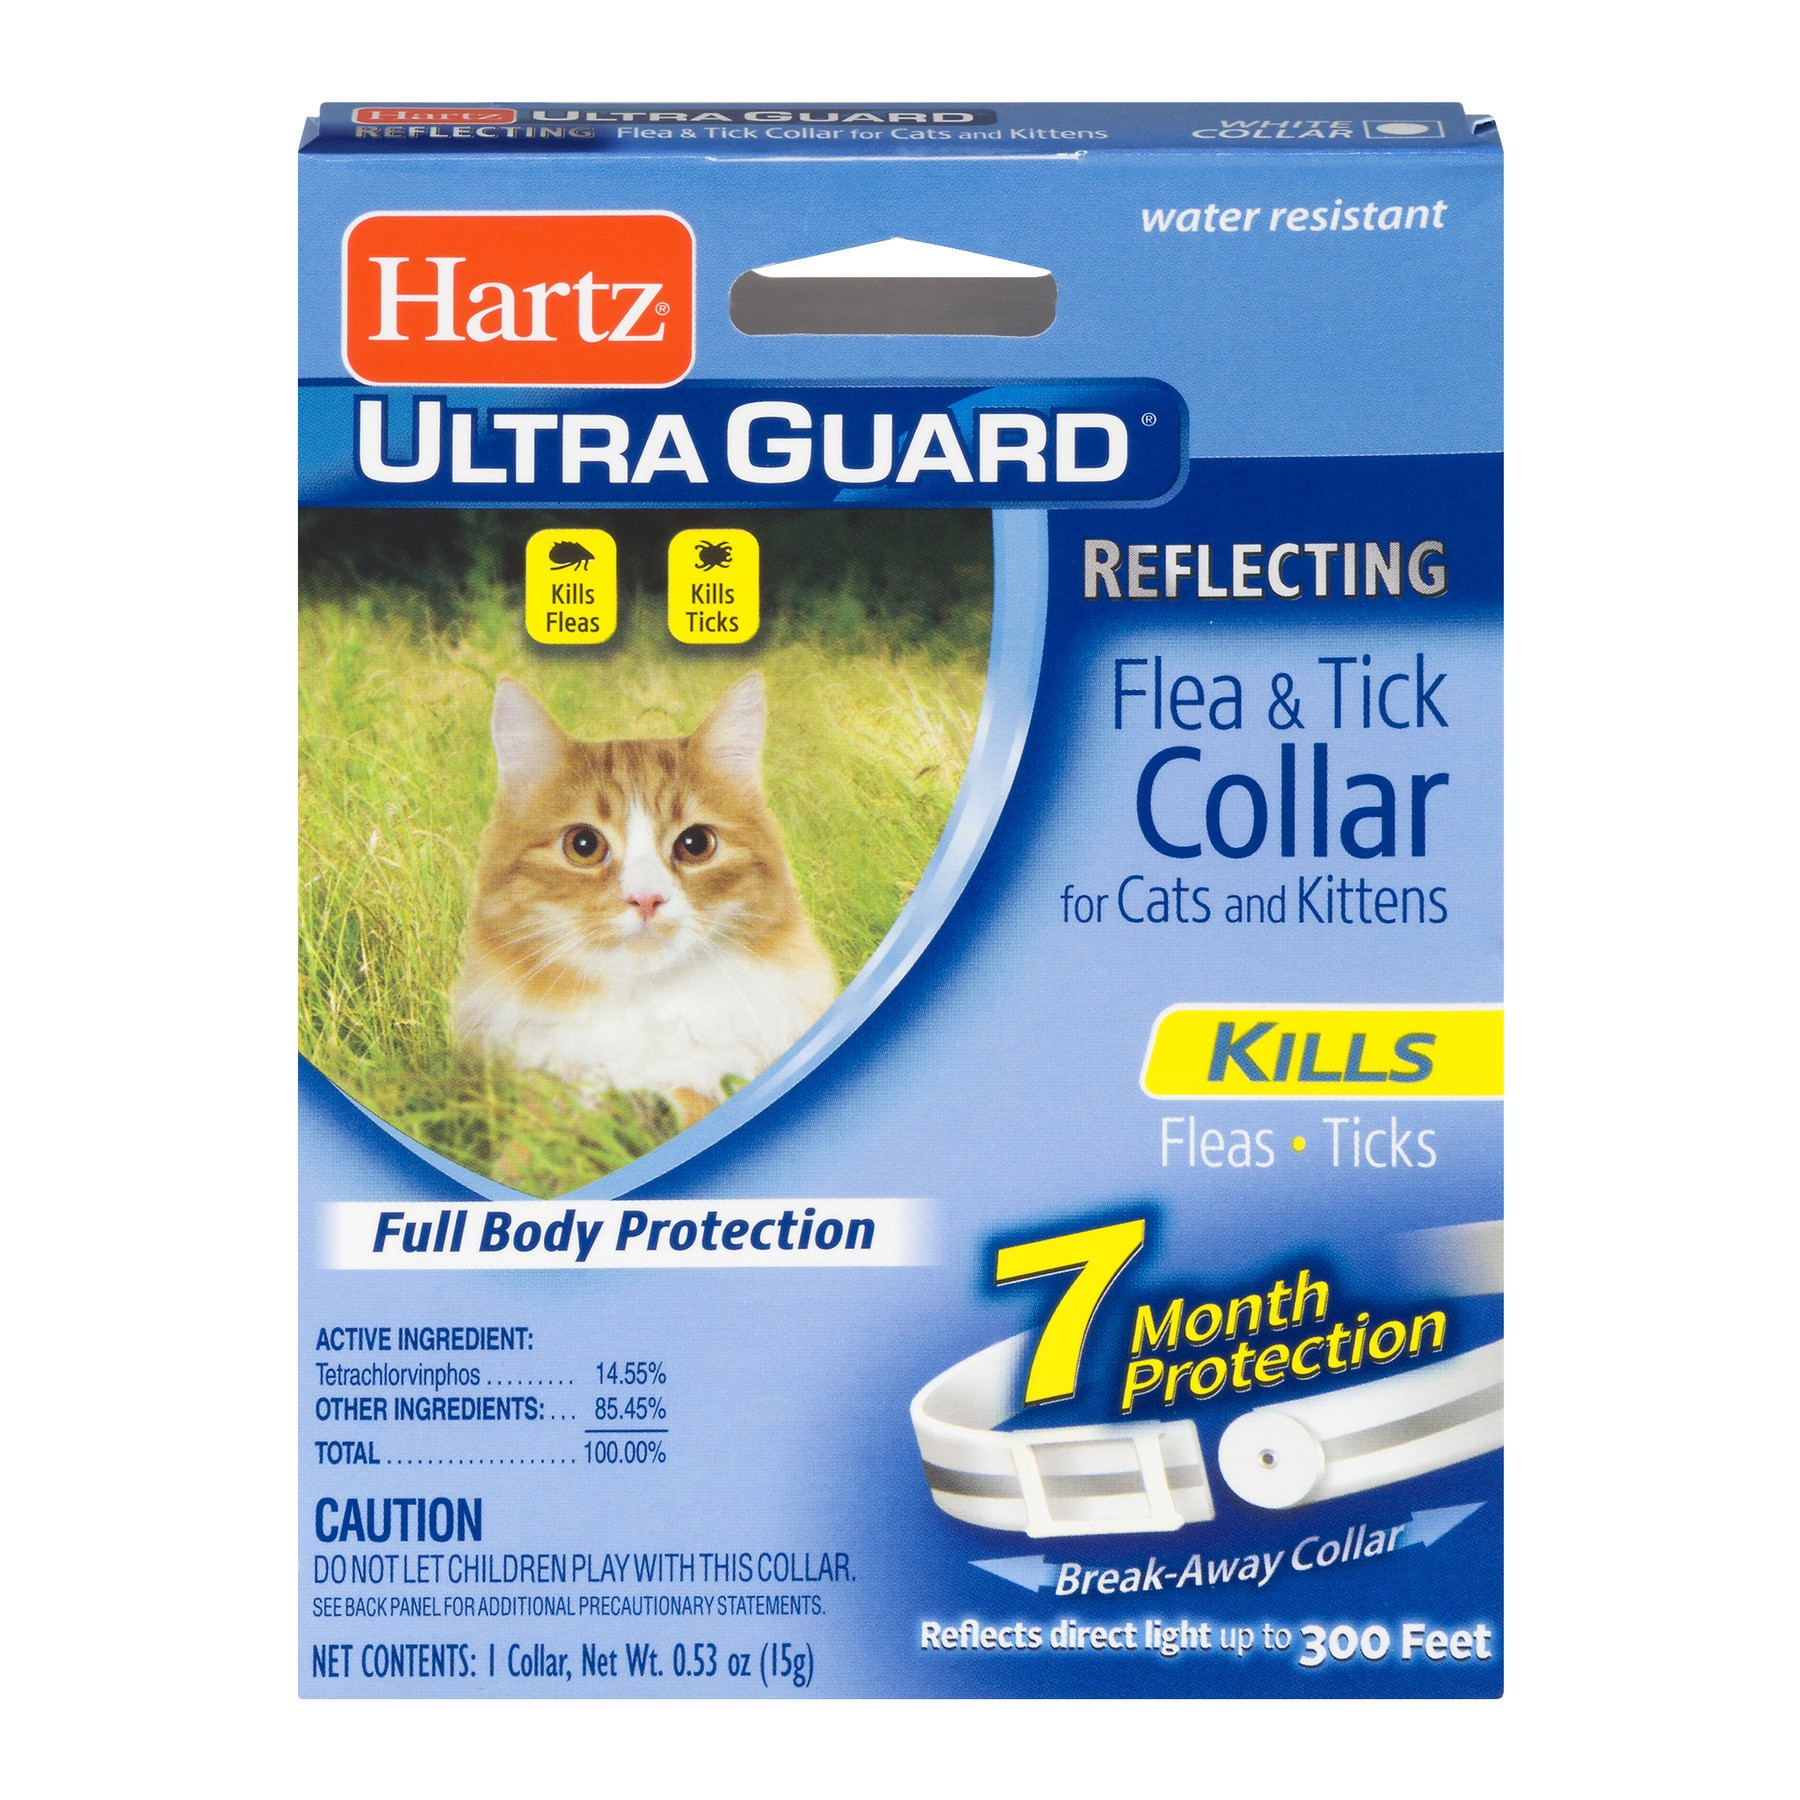 Hartz Ultra Guard Reflecting Flea & Tick Collar For Cats And Kittens, 0.53 OZ